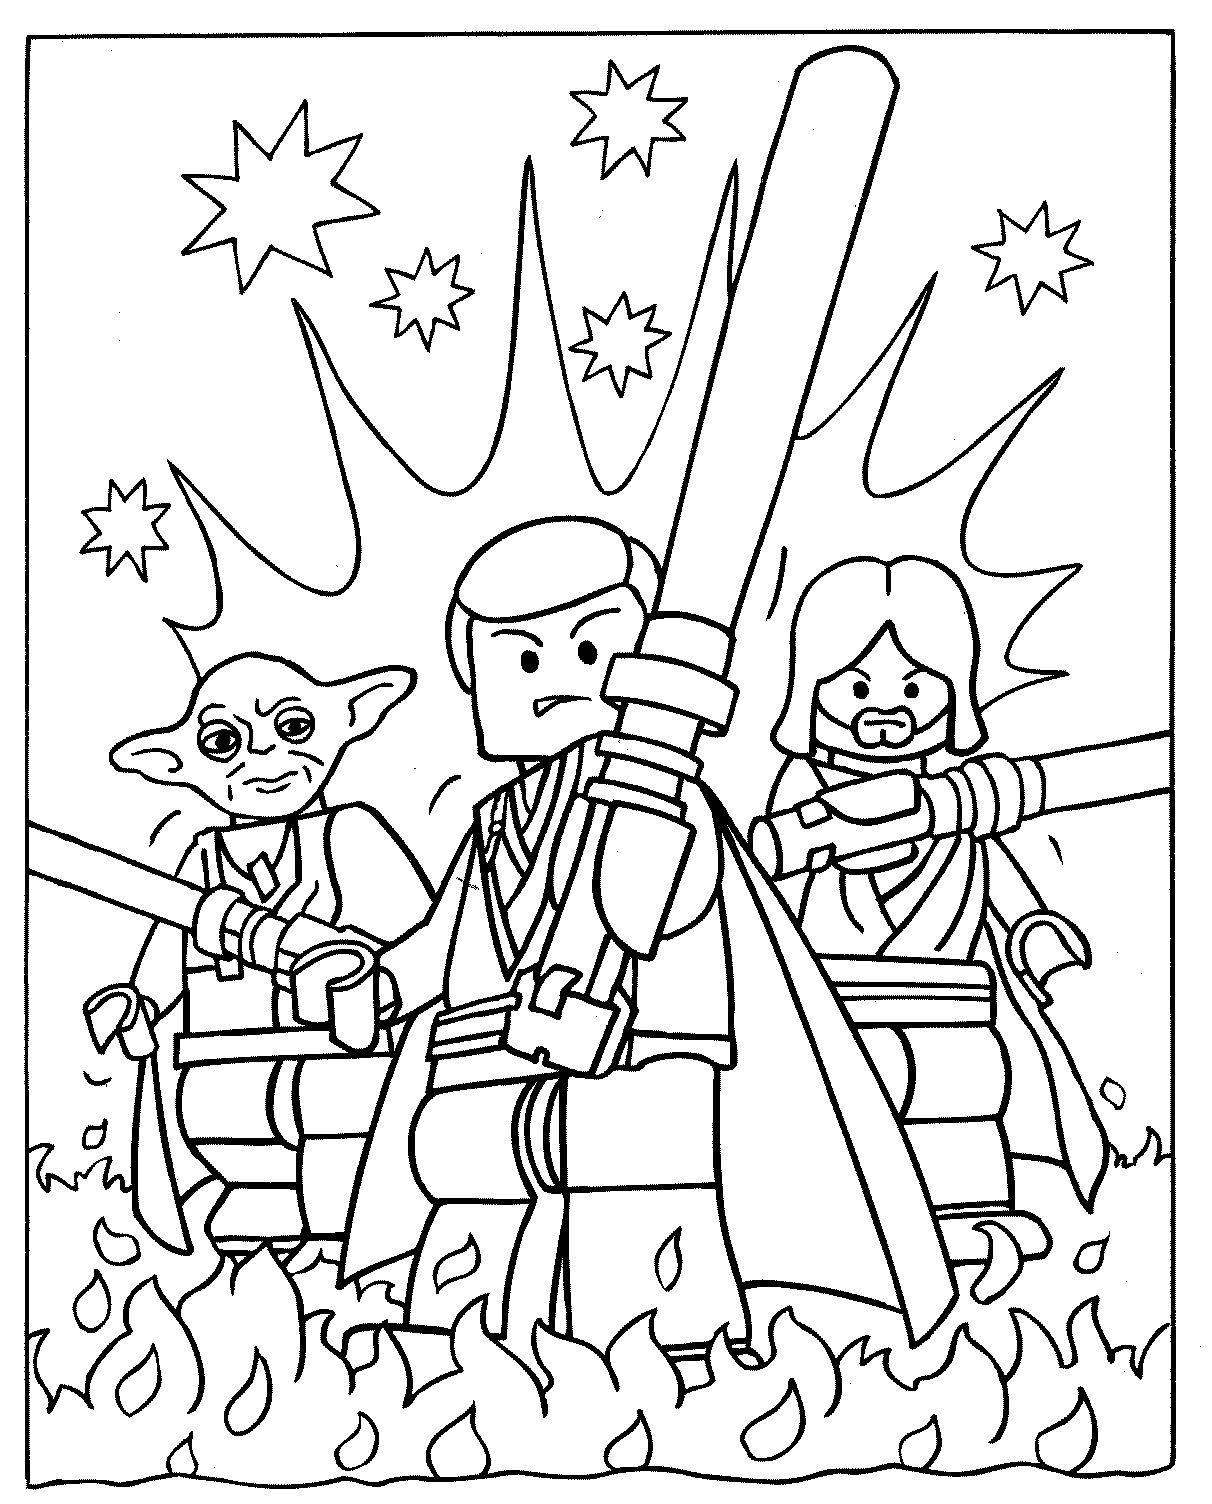 Lego Coloring Pages Lego Coloring Pages Lego Coloring Star